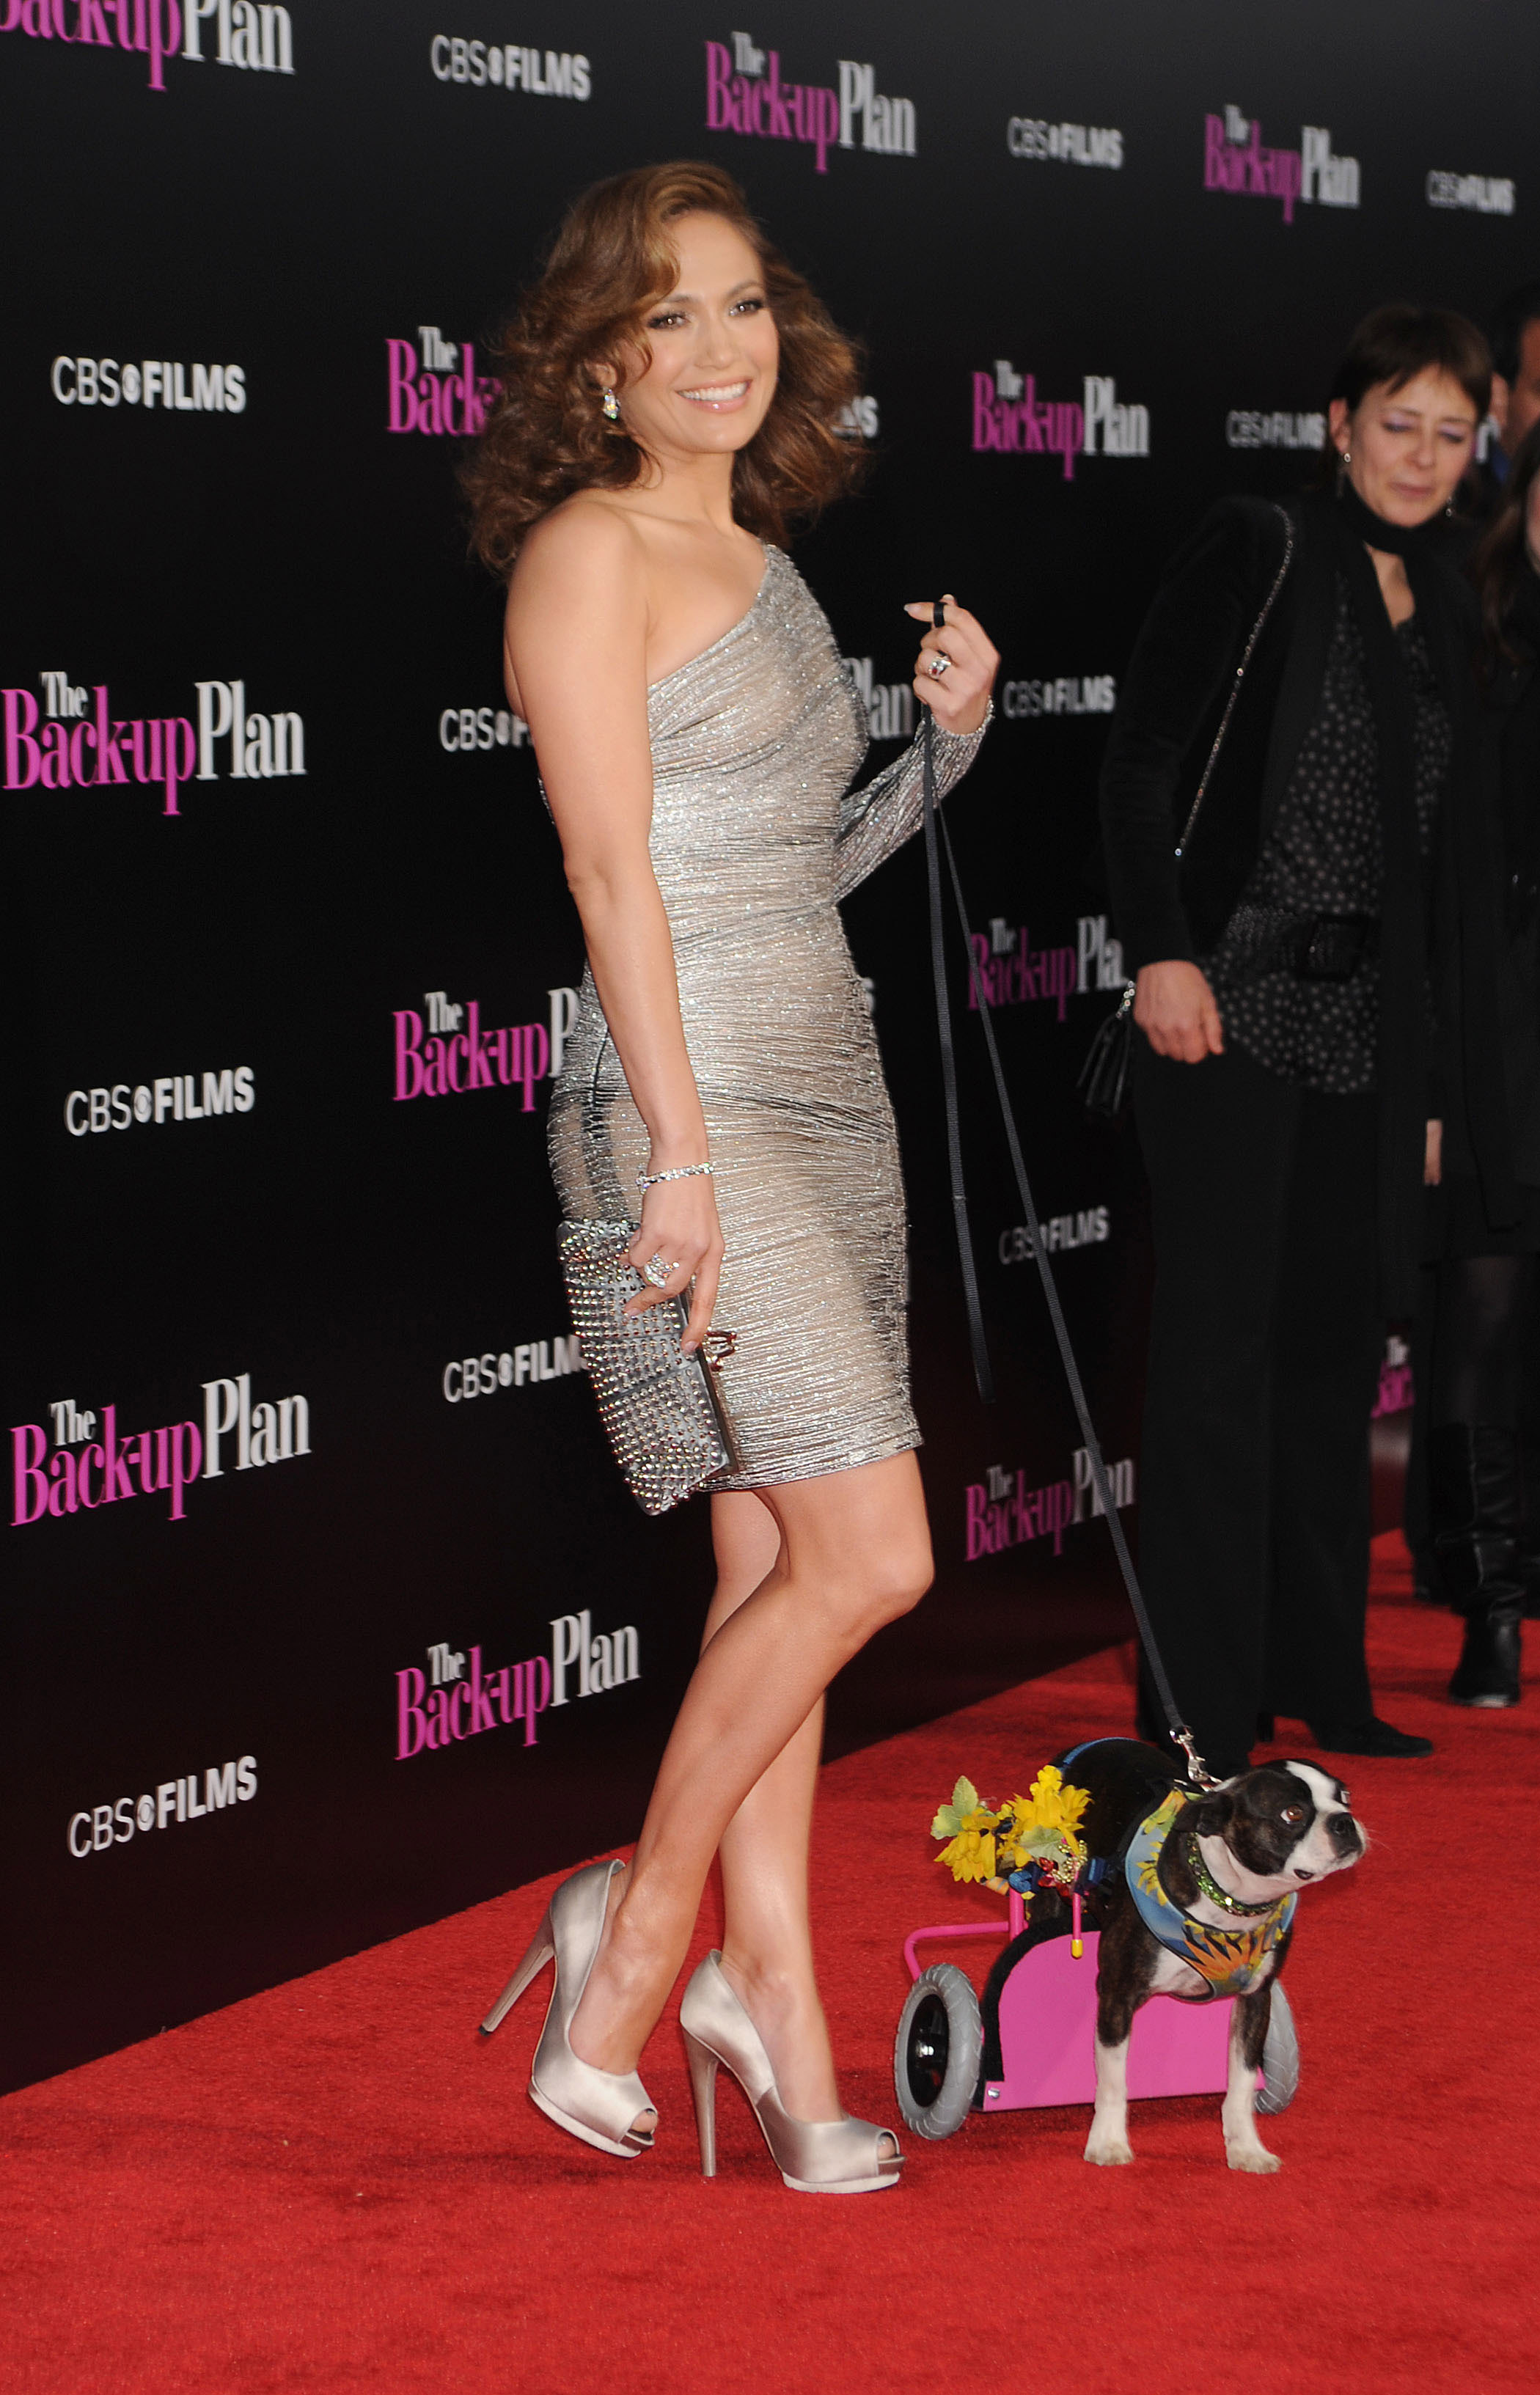 A stunning Jennifer Lopez and costar Nubbins do wheelies up the red carpet at the premiere for 2010's The Back-Up Plan.